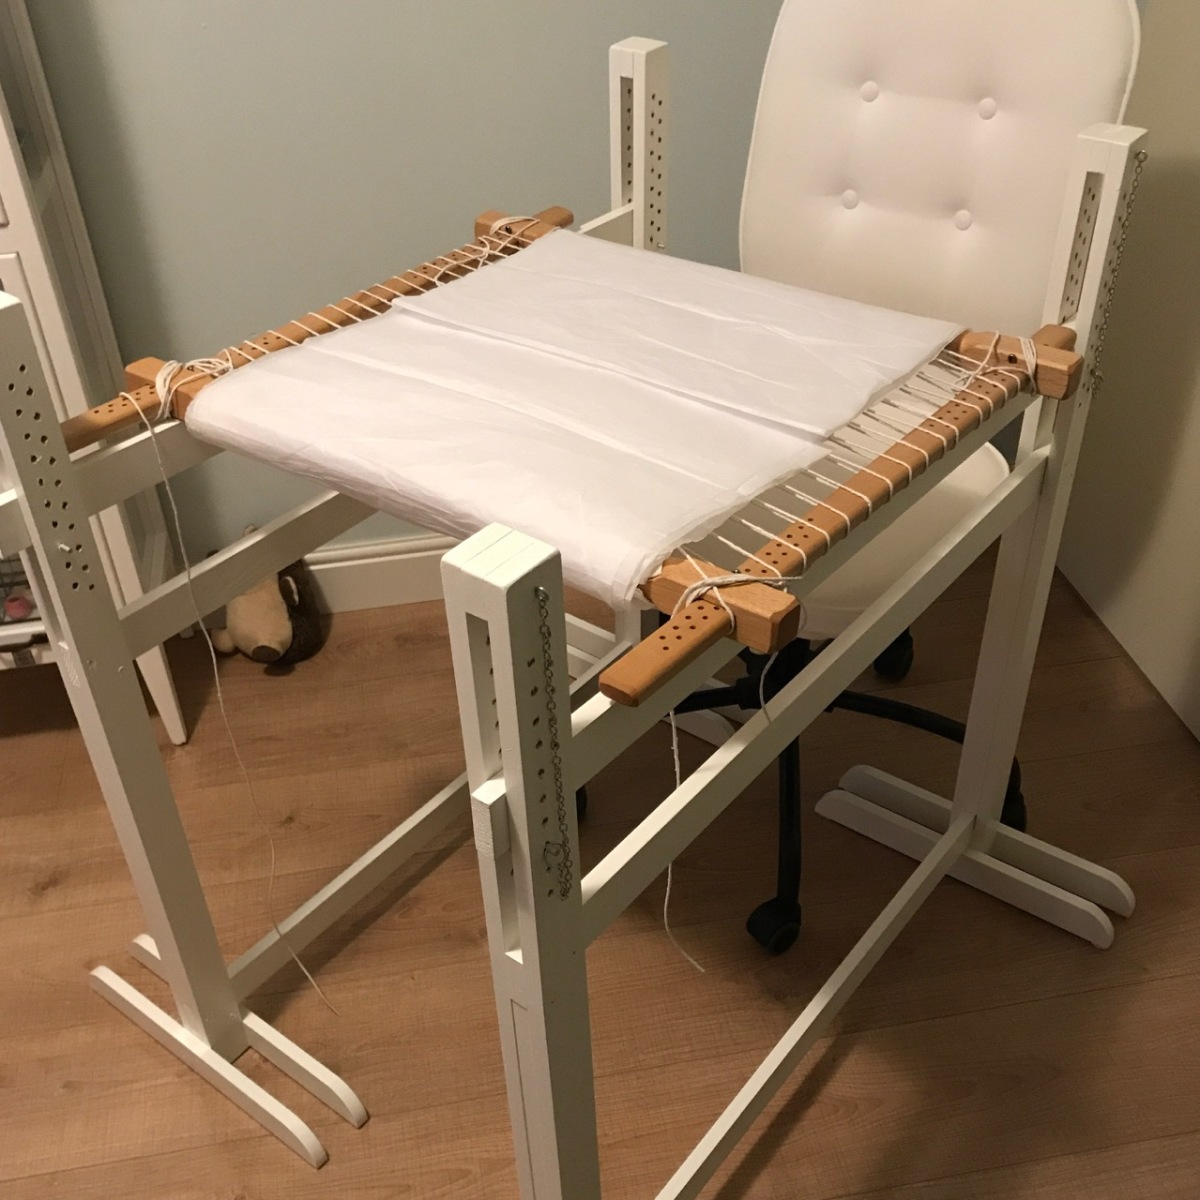 How to make a pair of trestles for your embroidery frame